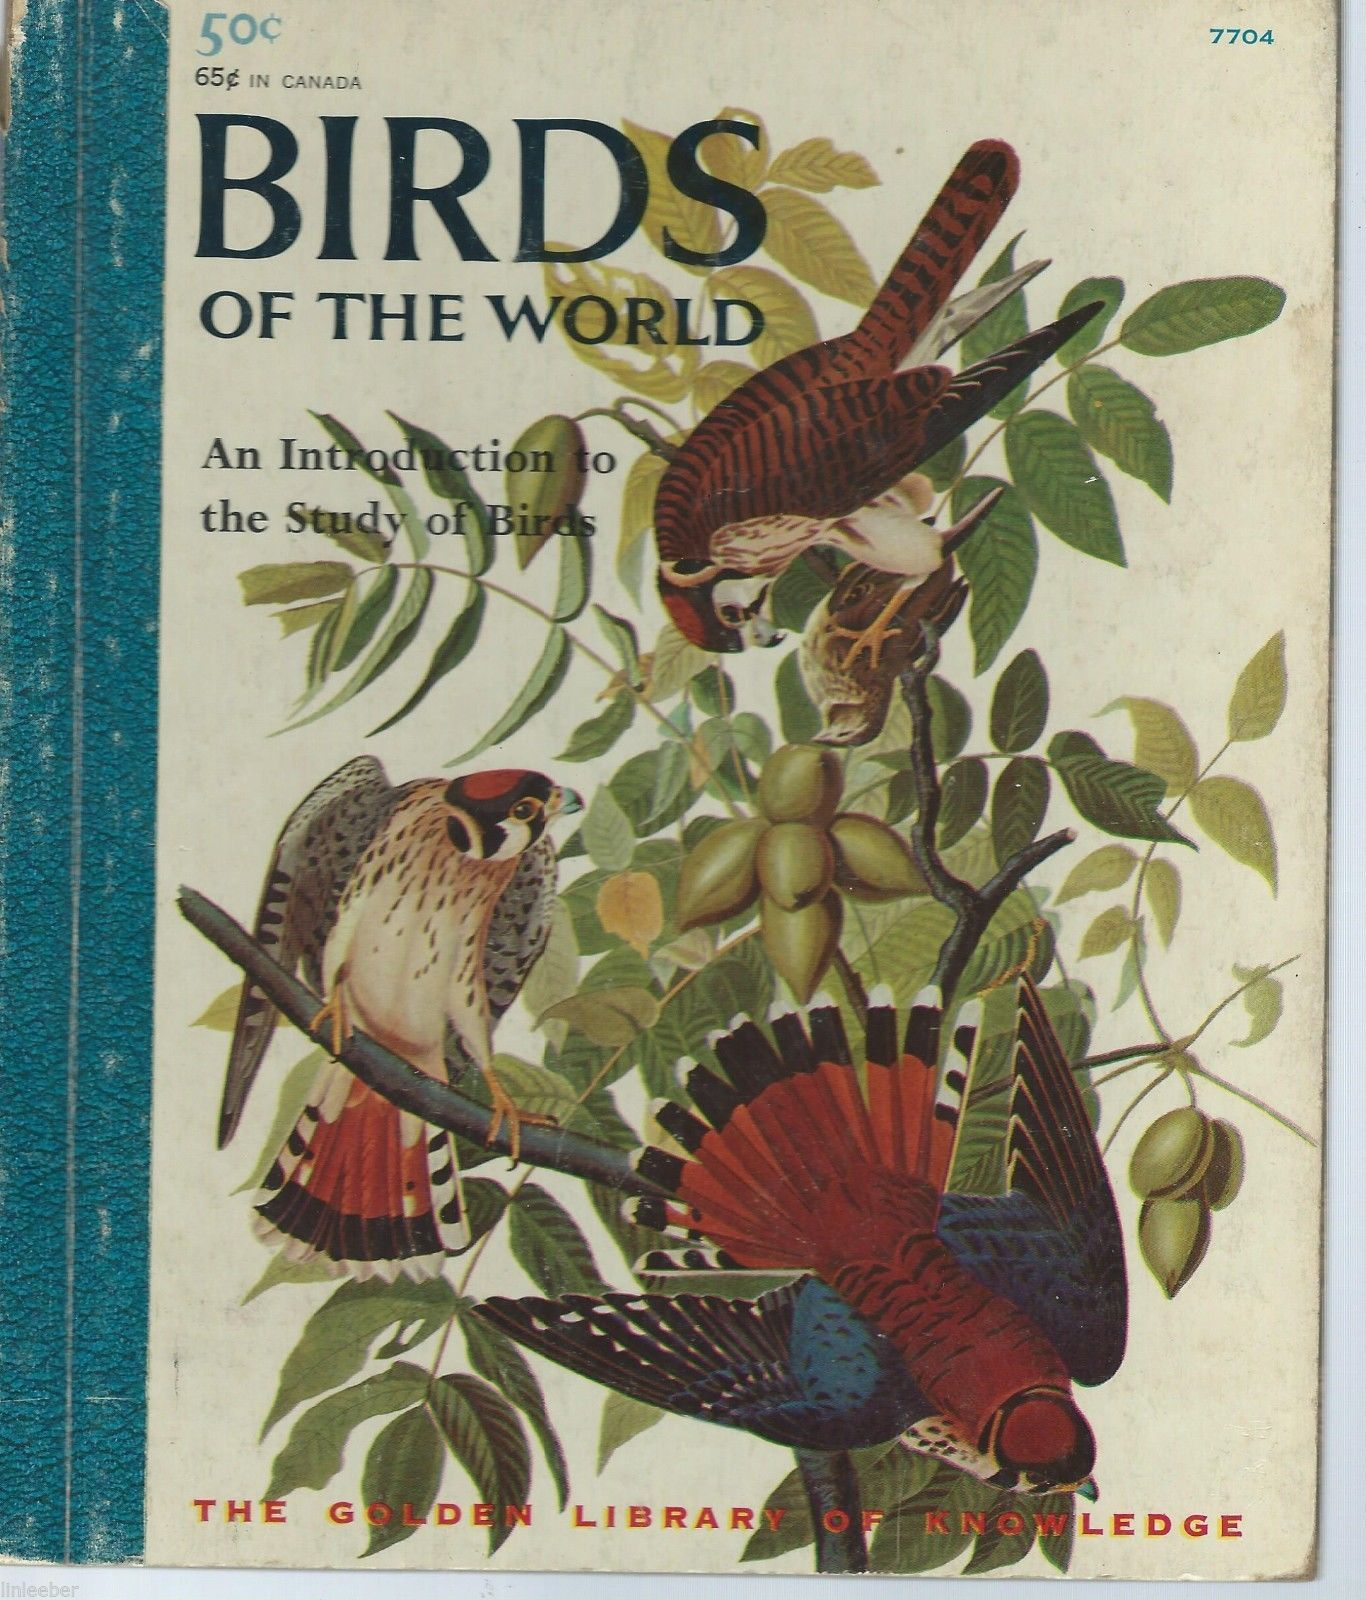 Birds Of The World:An Introduction To The Study Of Birds;Eunice Holsaert; #7704